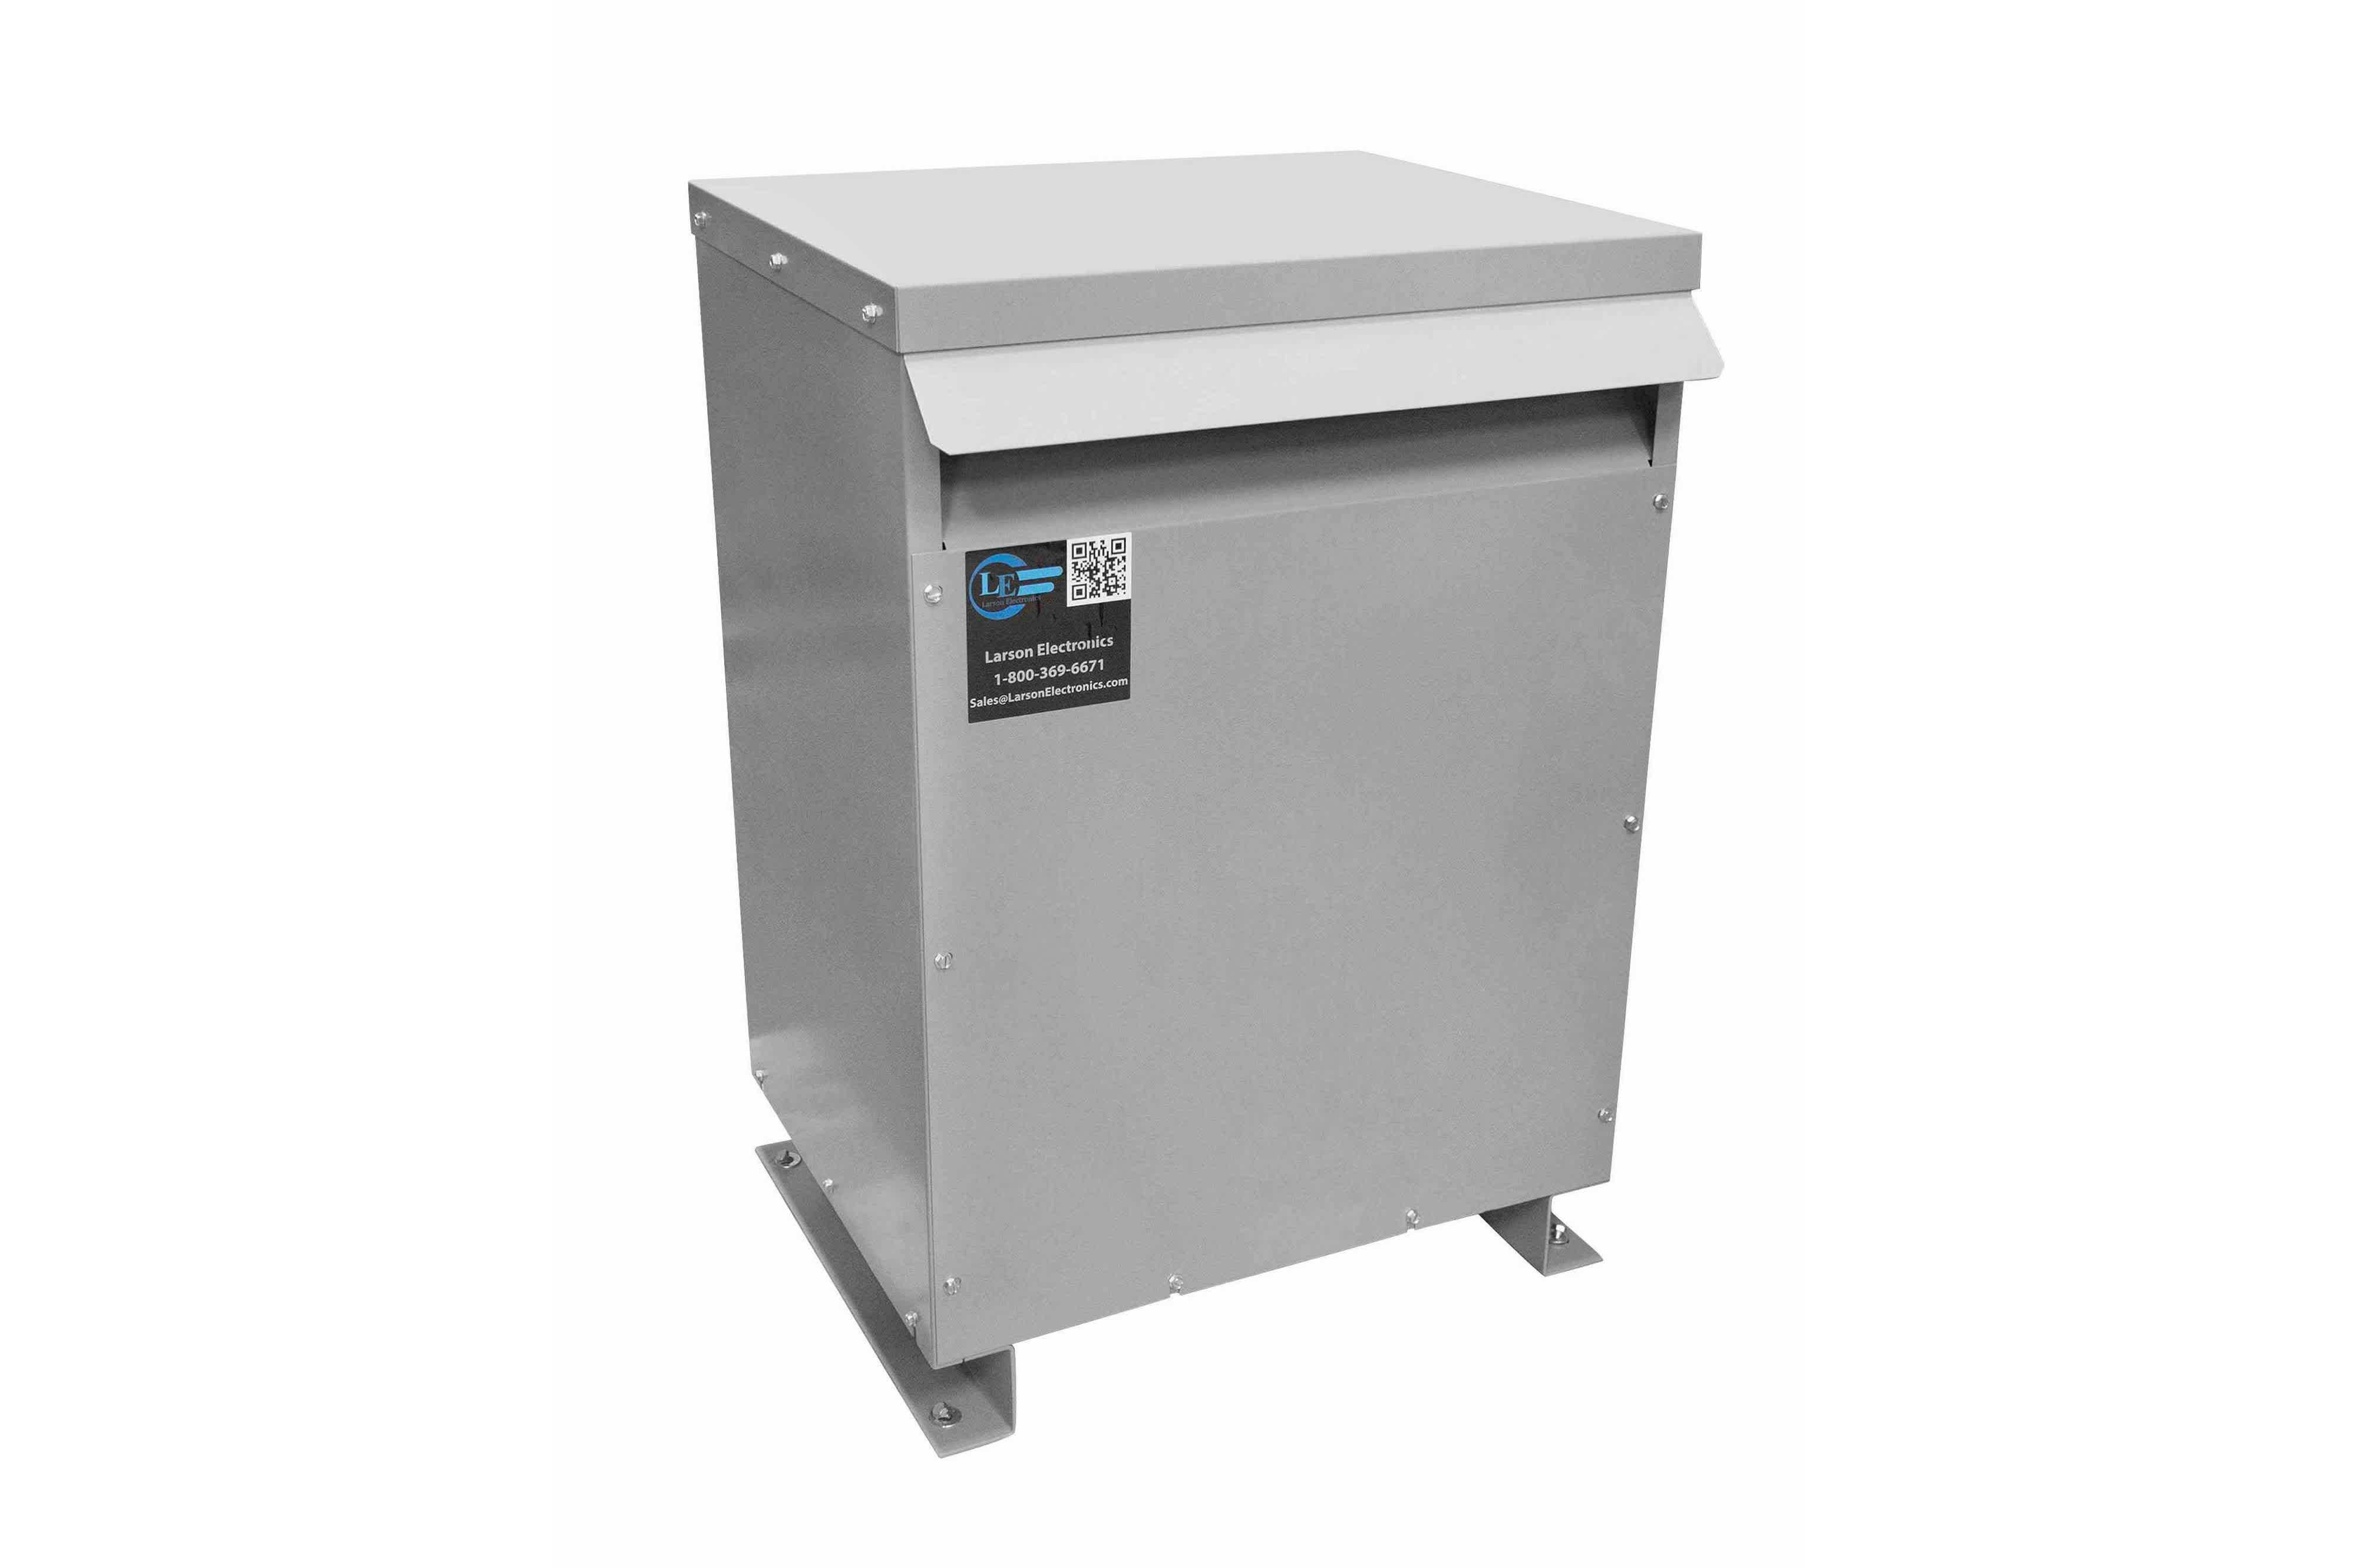 700 kVA 3PH Isolation Transformer, 208V Delta Primary, 480V Delta Secondary, N3R, Ventilated, 60 Hz